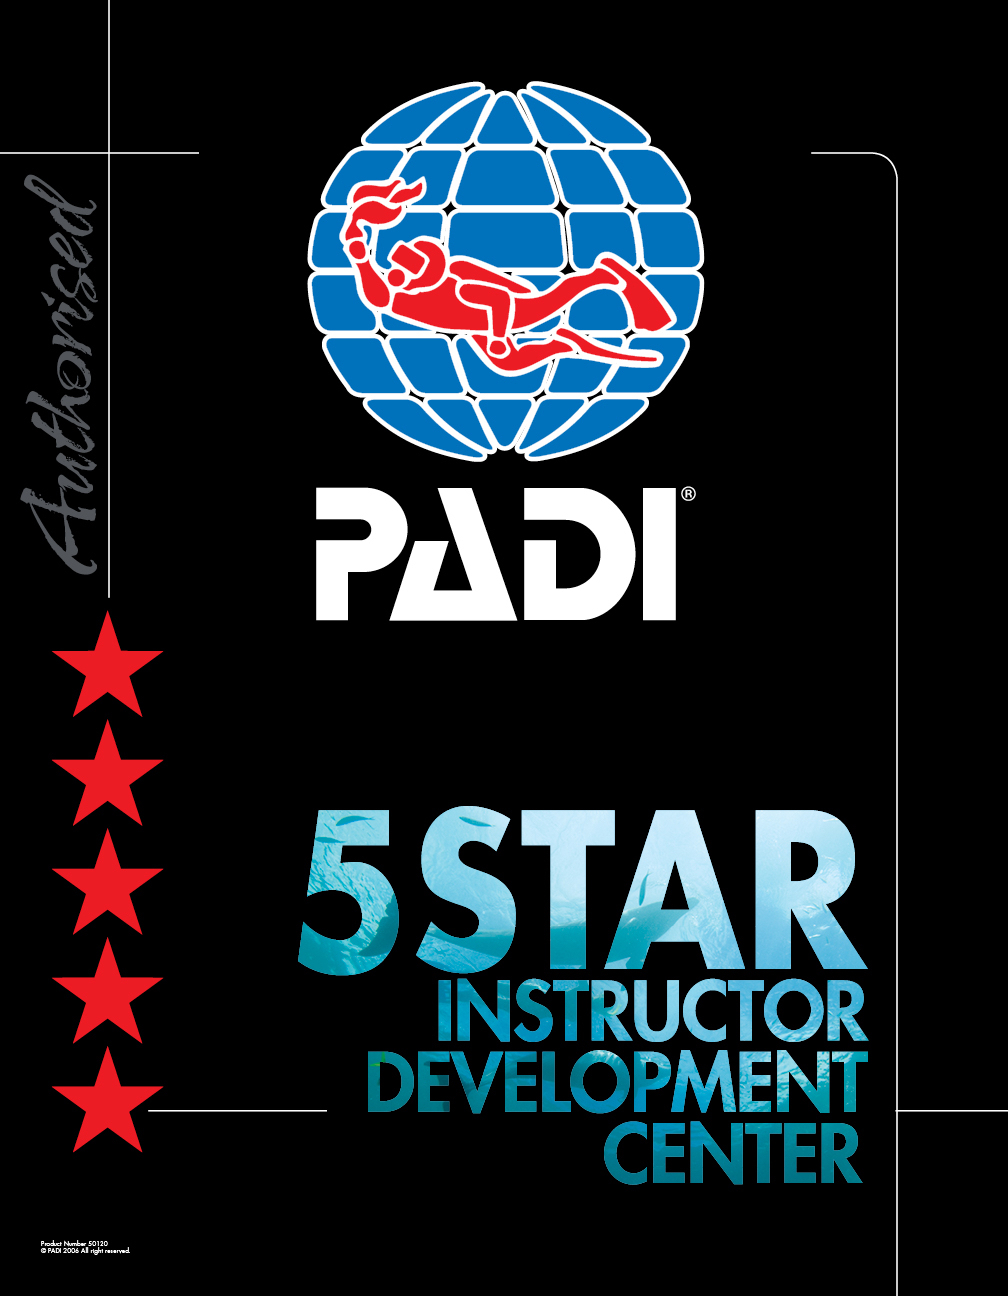 PADI 5 Star Instructor Development Center Oberpfalz